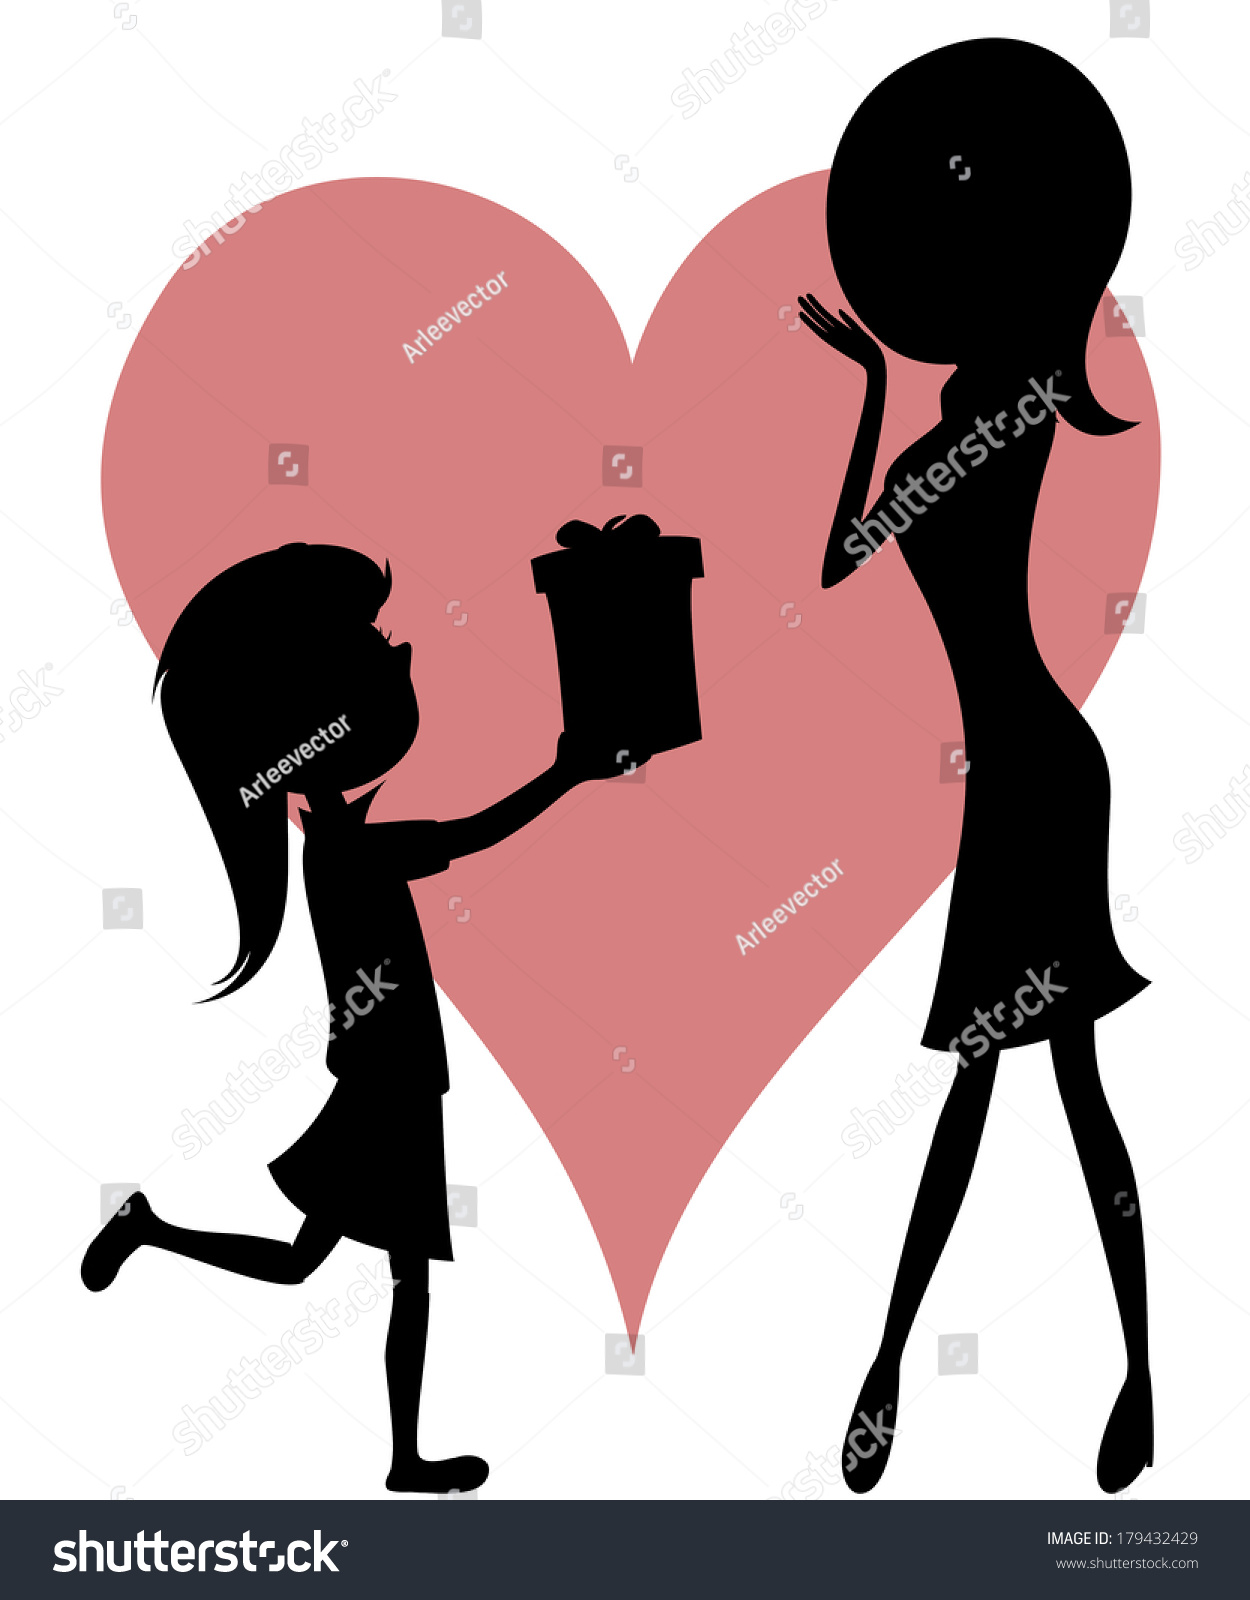 Surprise Mom Cartoonstyle Art Black Silhouettes Stock ...